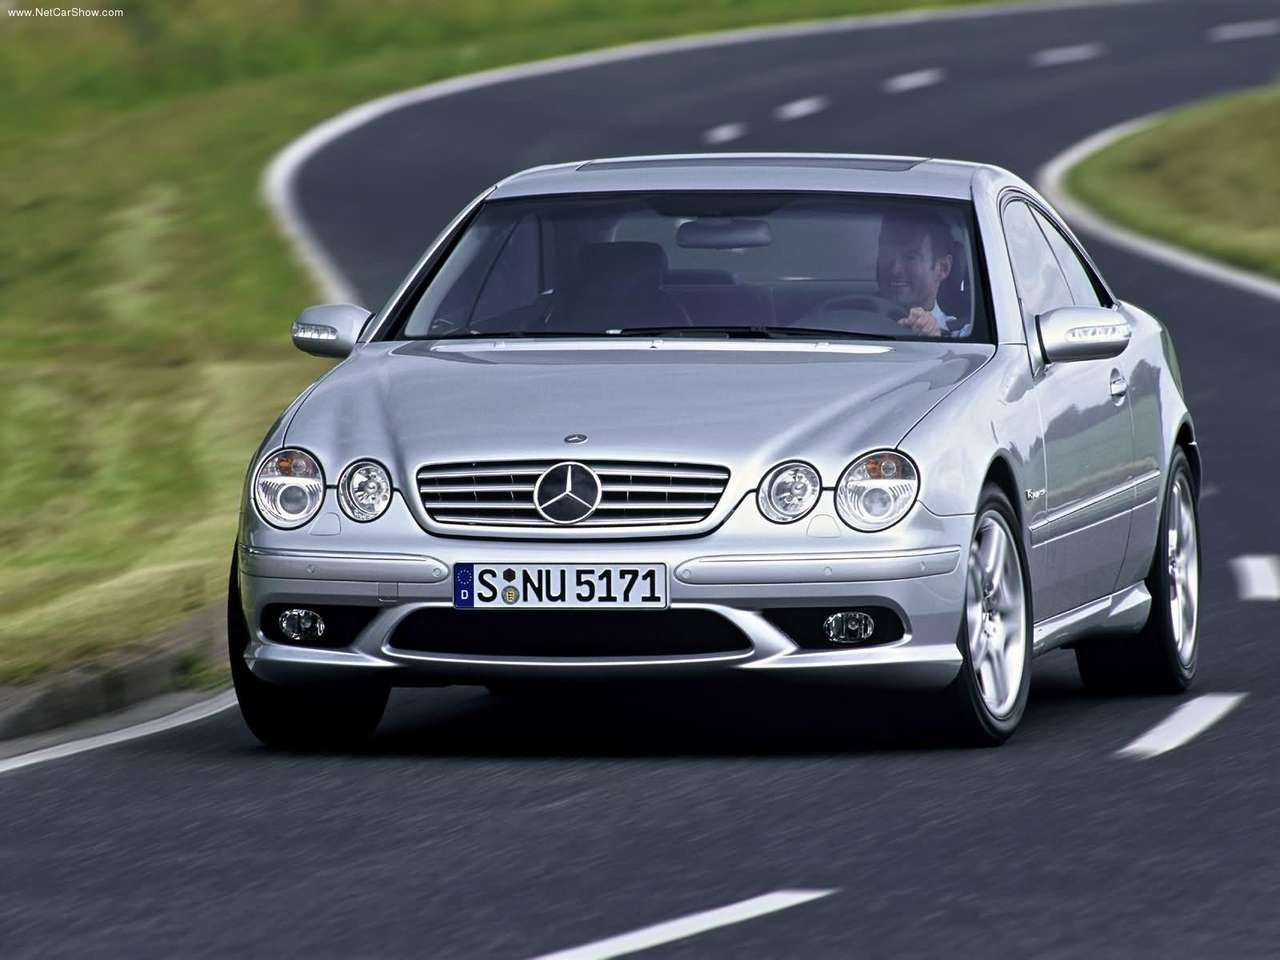 2003 mercedes benz cl55 amg mercedes benz m113 engine wikipedia the free